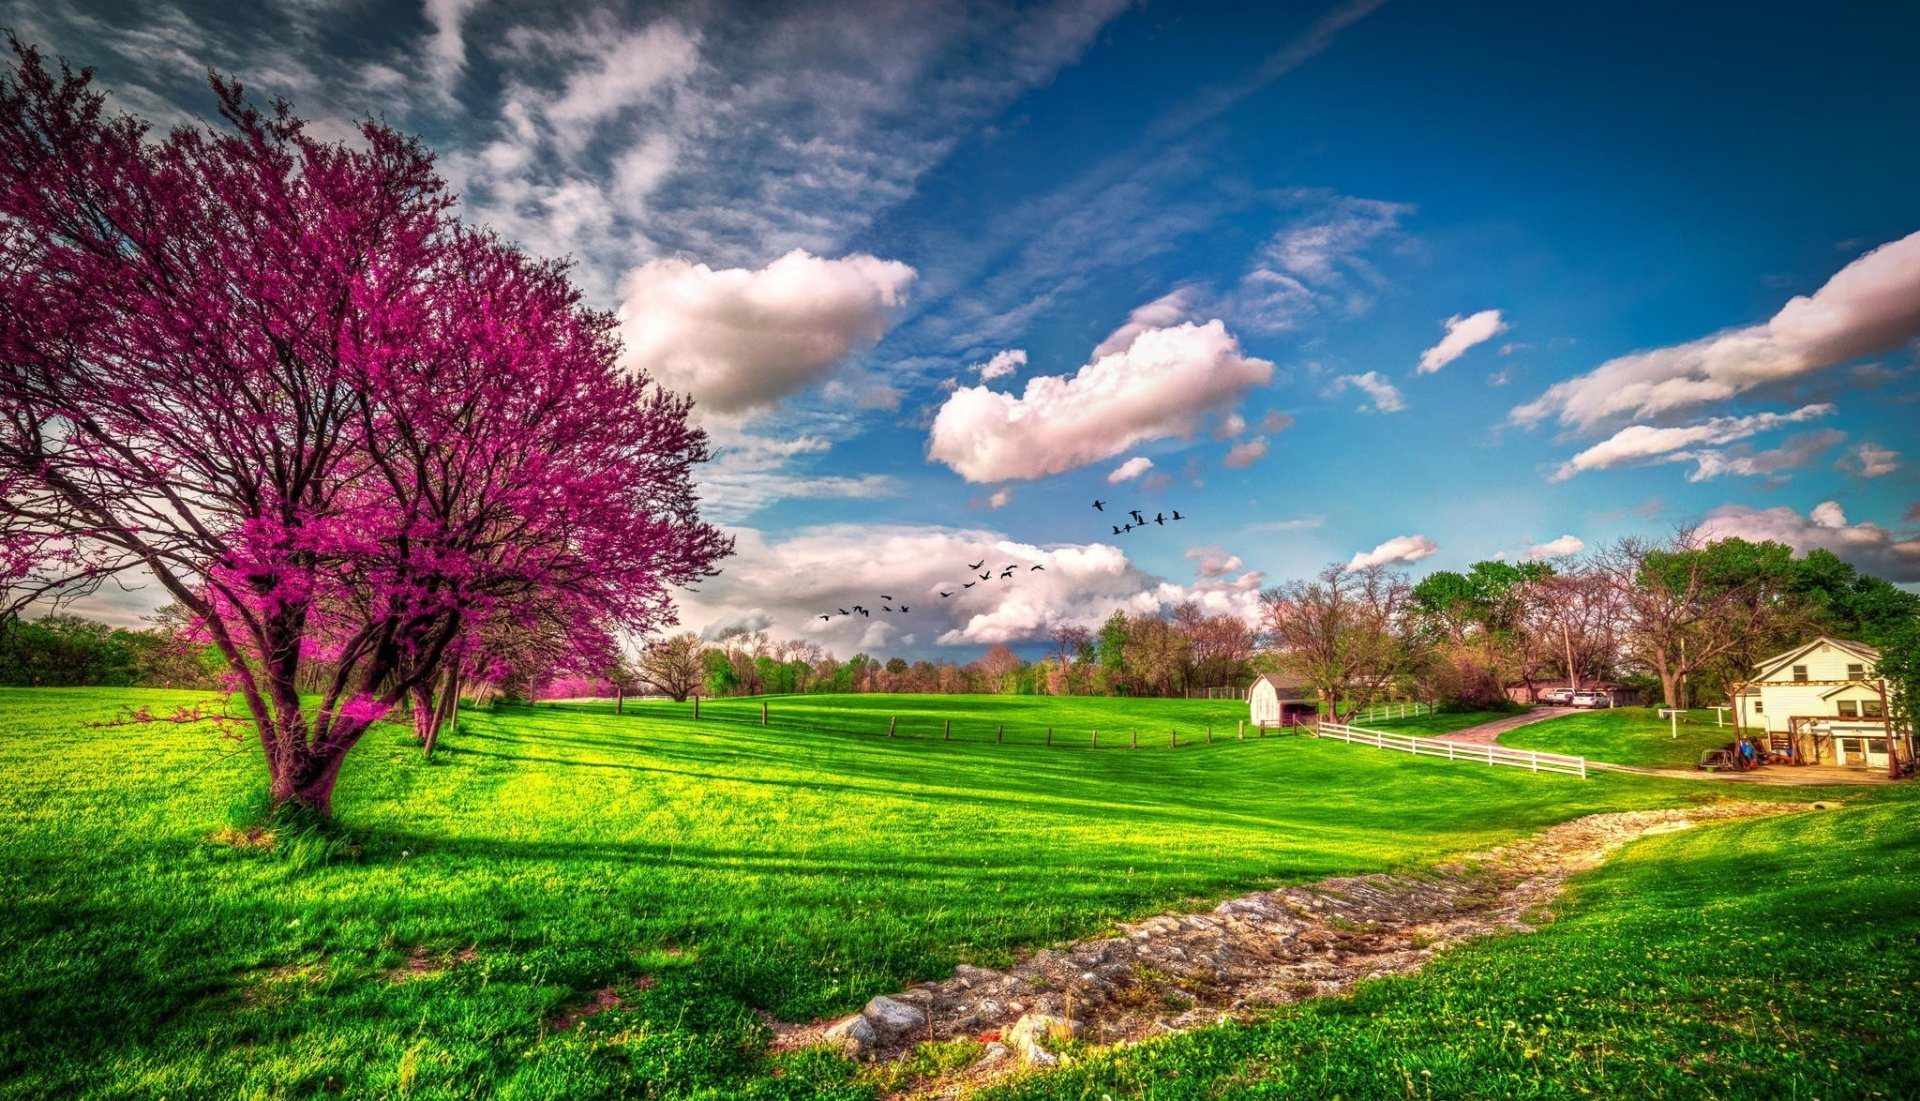 Earth - Spring  Tree Blossom Sky Cloud House Wallpaper